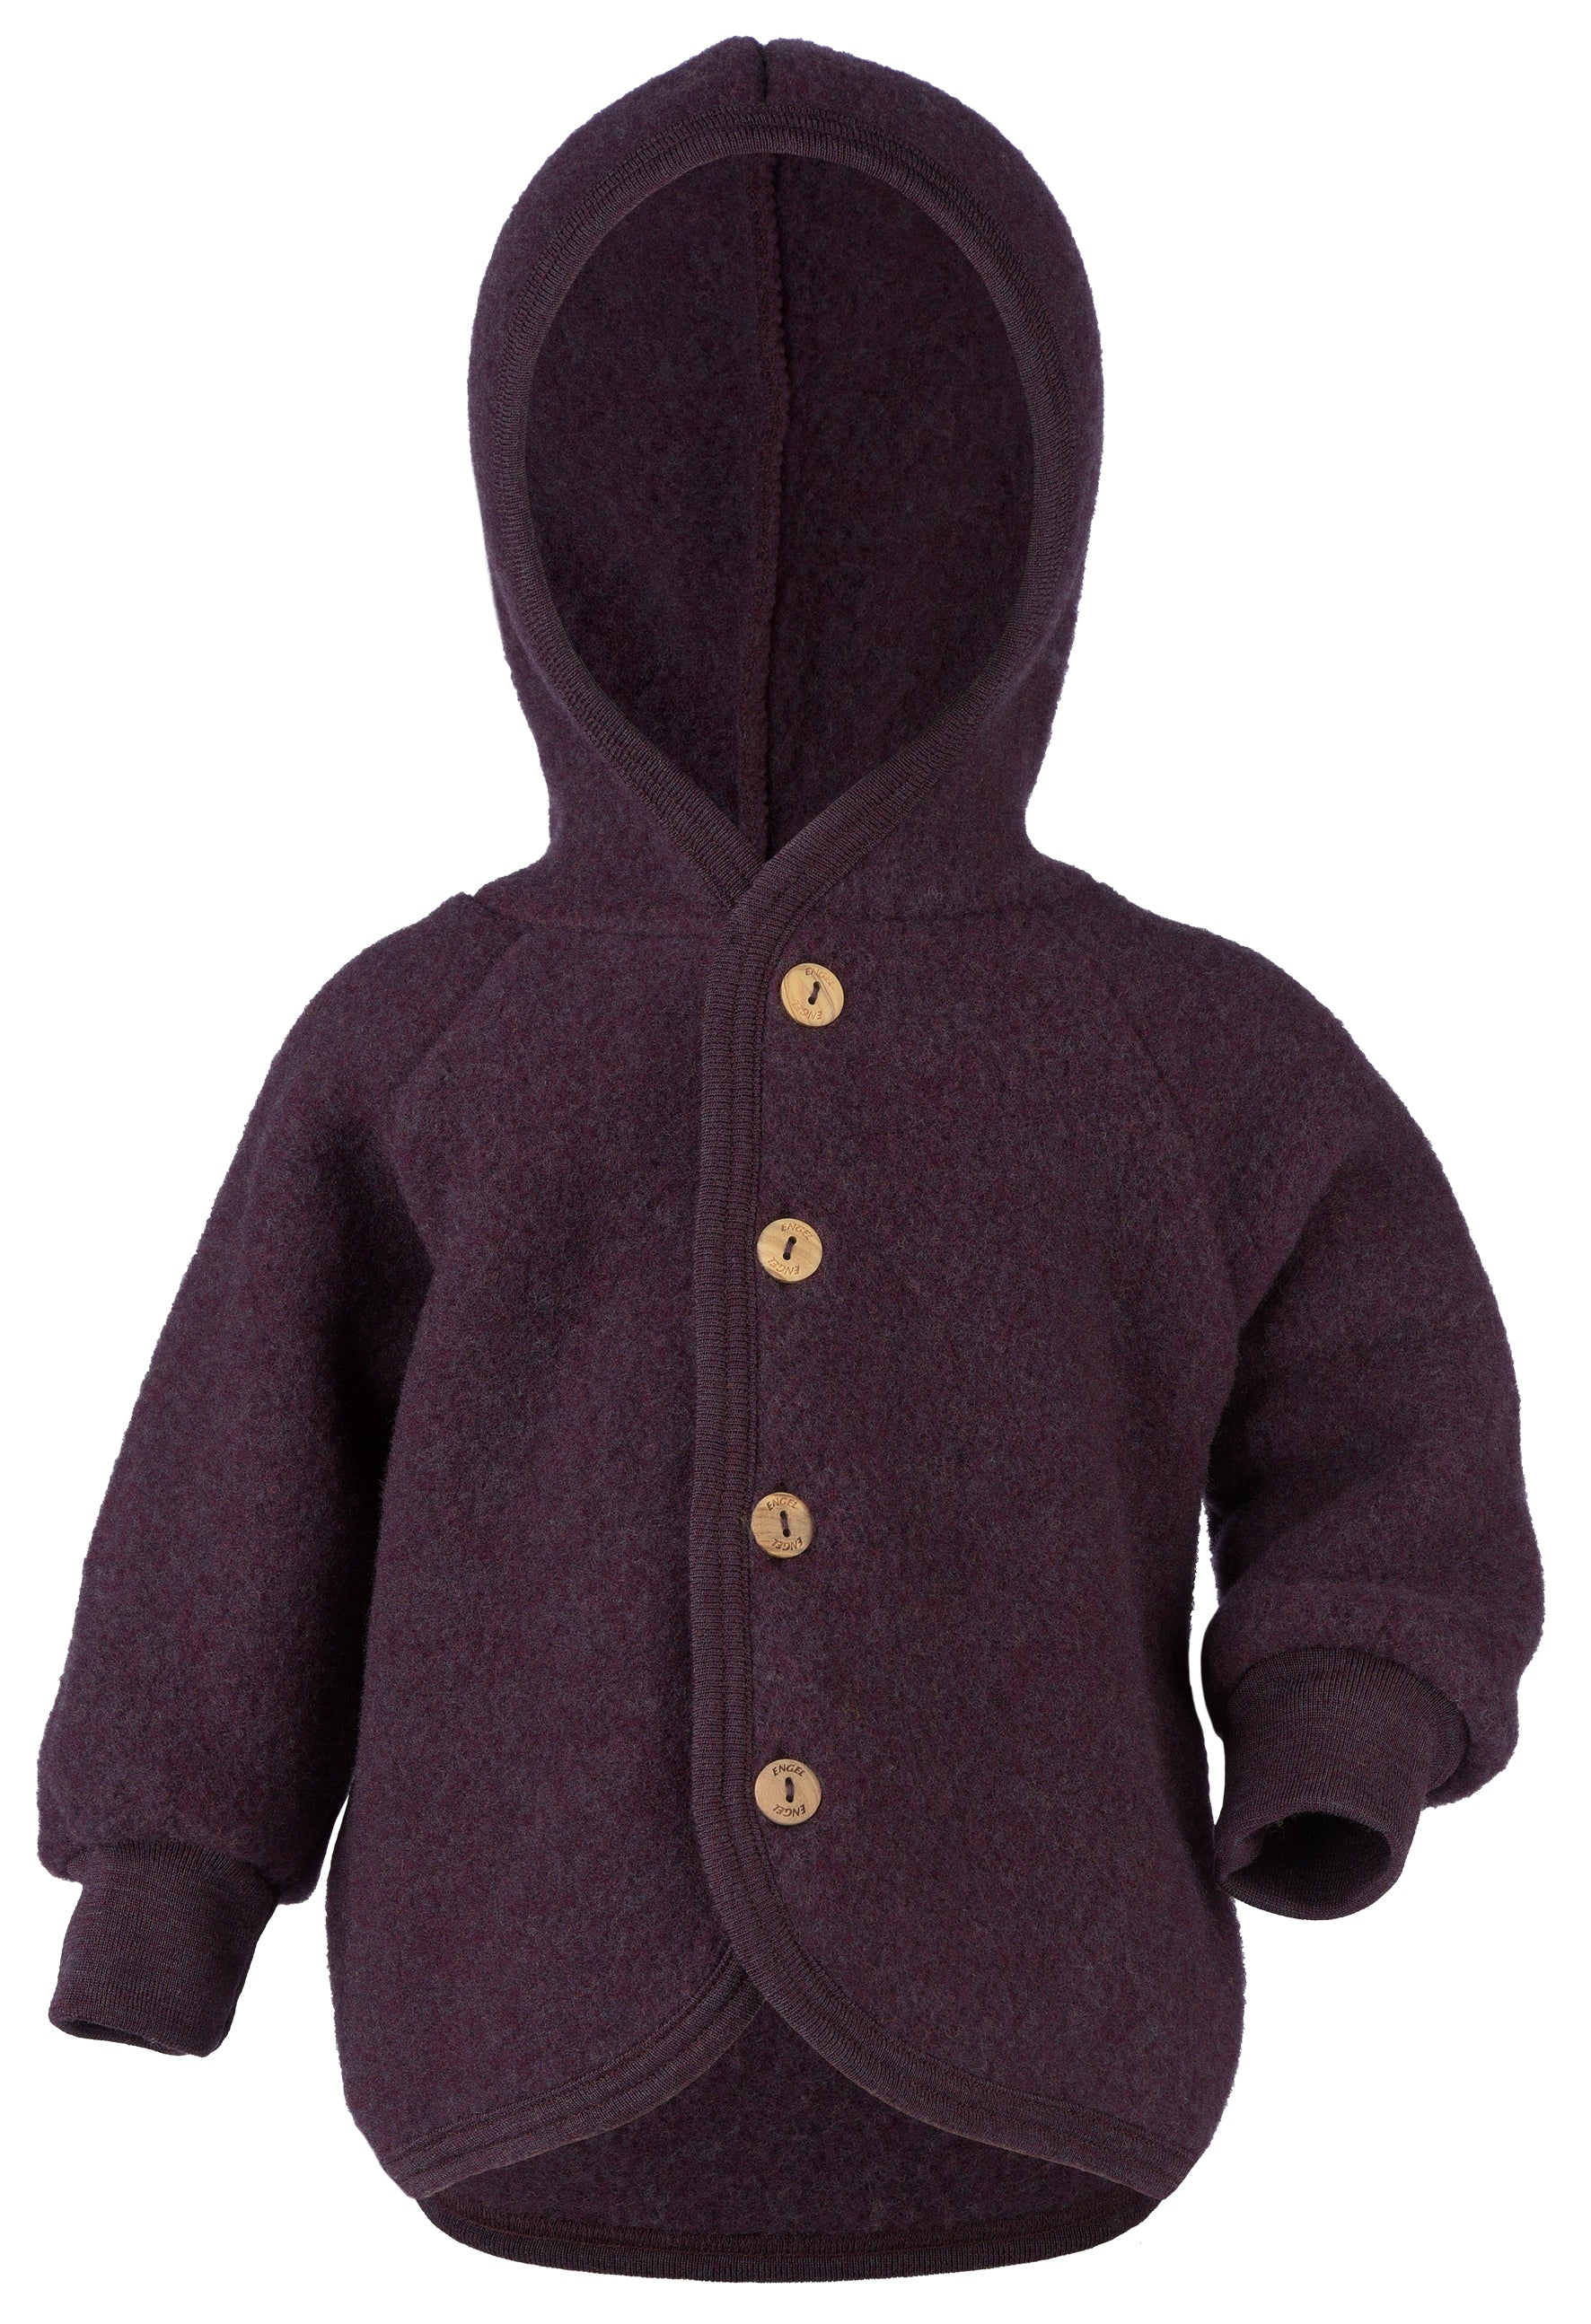 Engel Organic Merino Wool Fleece Jacket Hooded Yooki